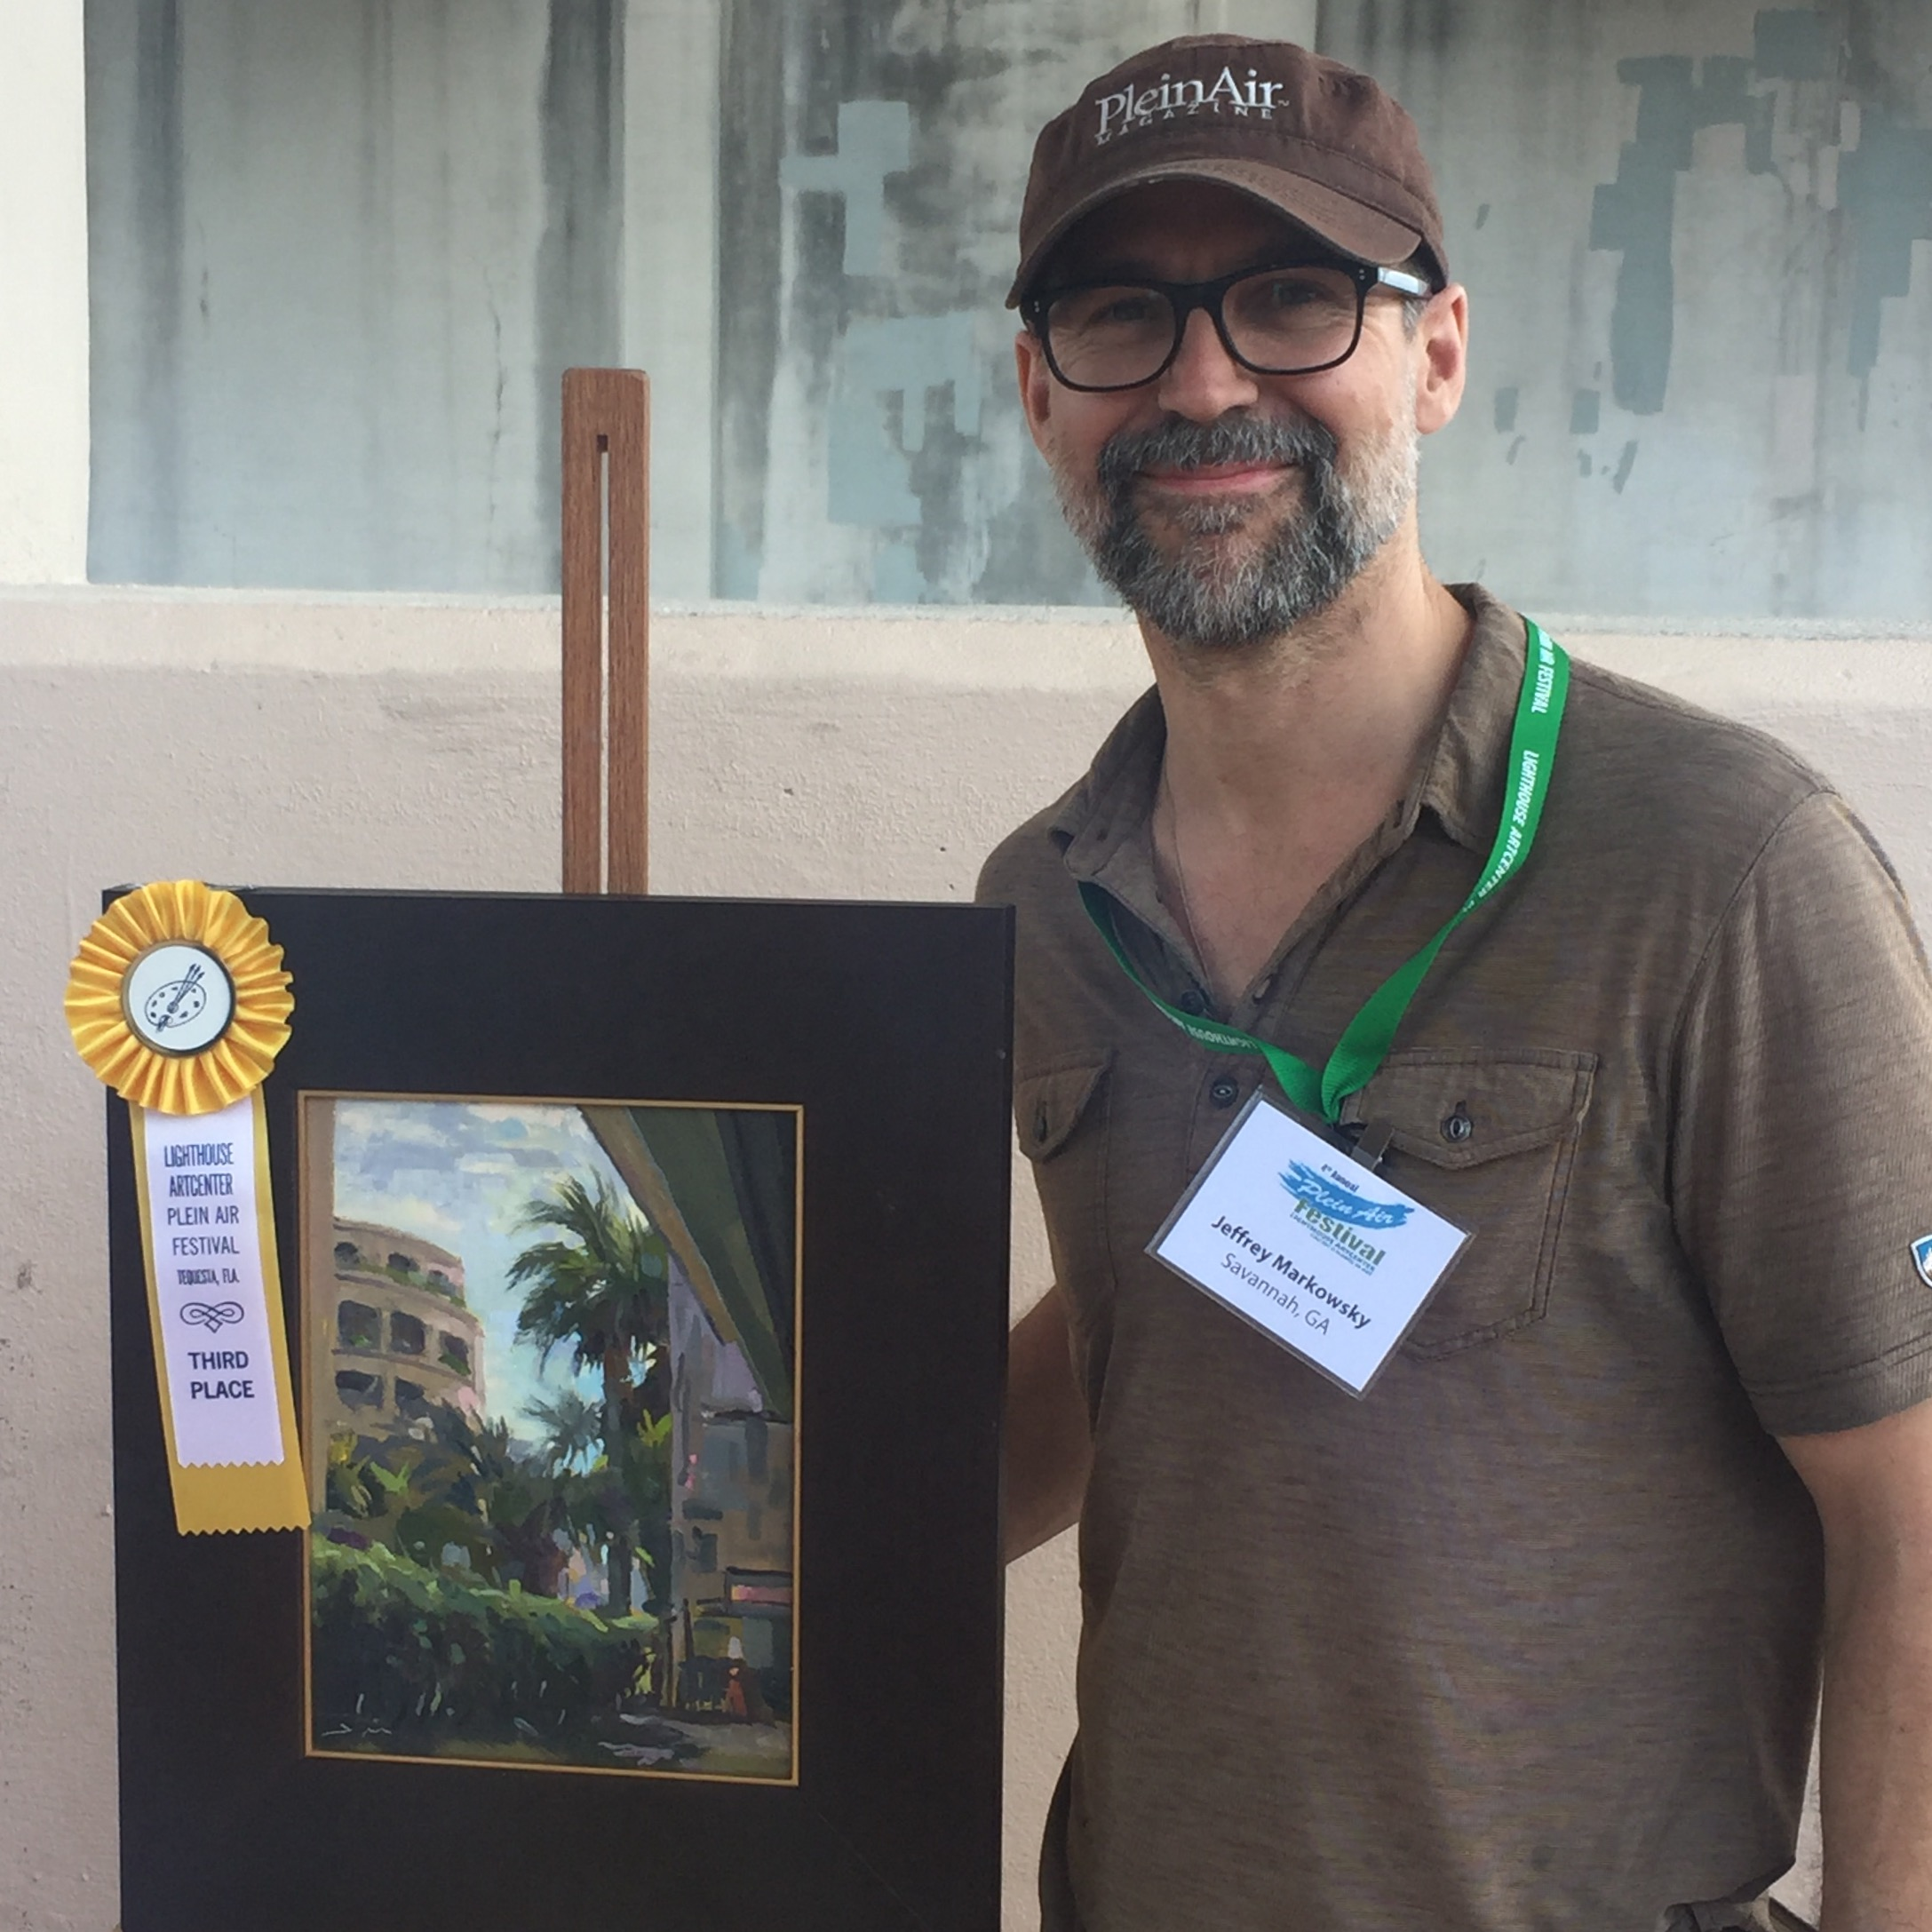 I was very grateful and honored to win Third Place at the Quick Paint during the 2017 4th Annual Lighthouse Plein Air Festival in Jupiter Florida. Special thanks to judge Goerge Van Hook for the honors.